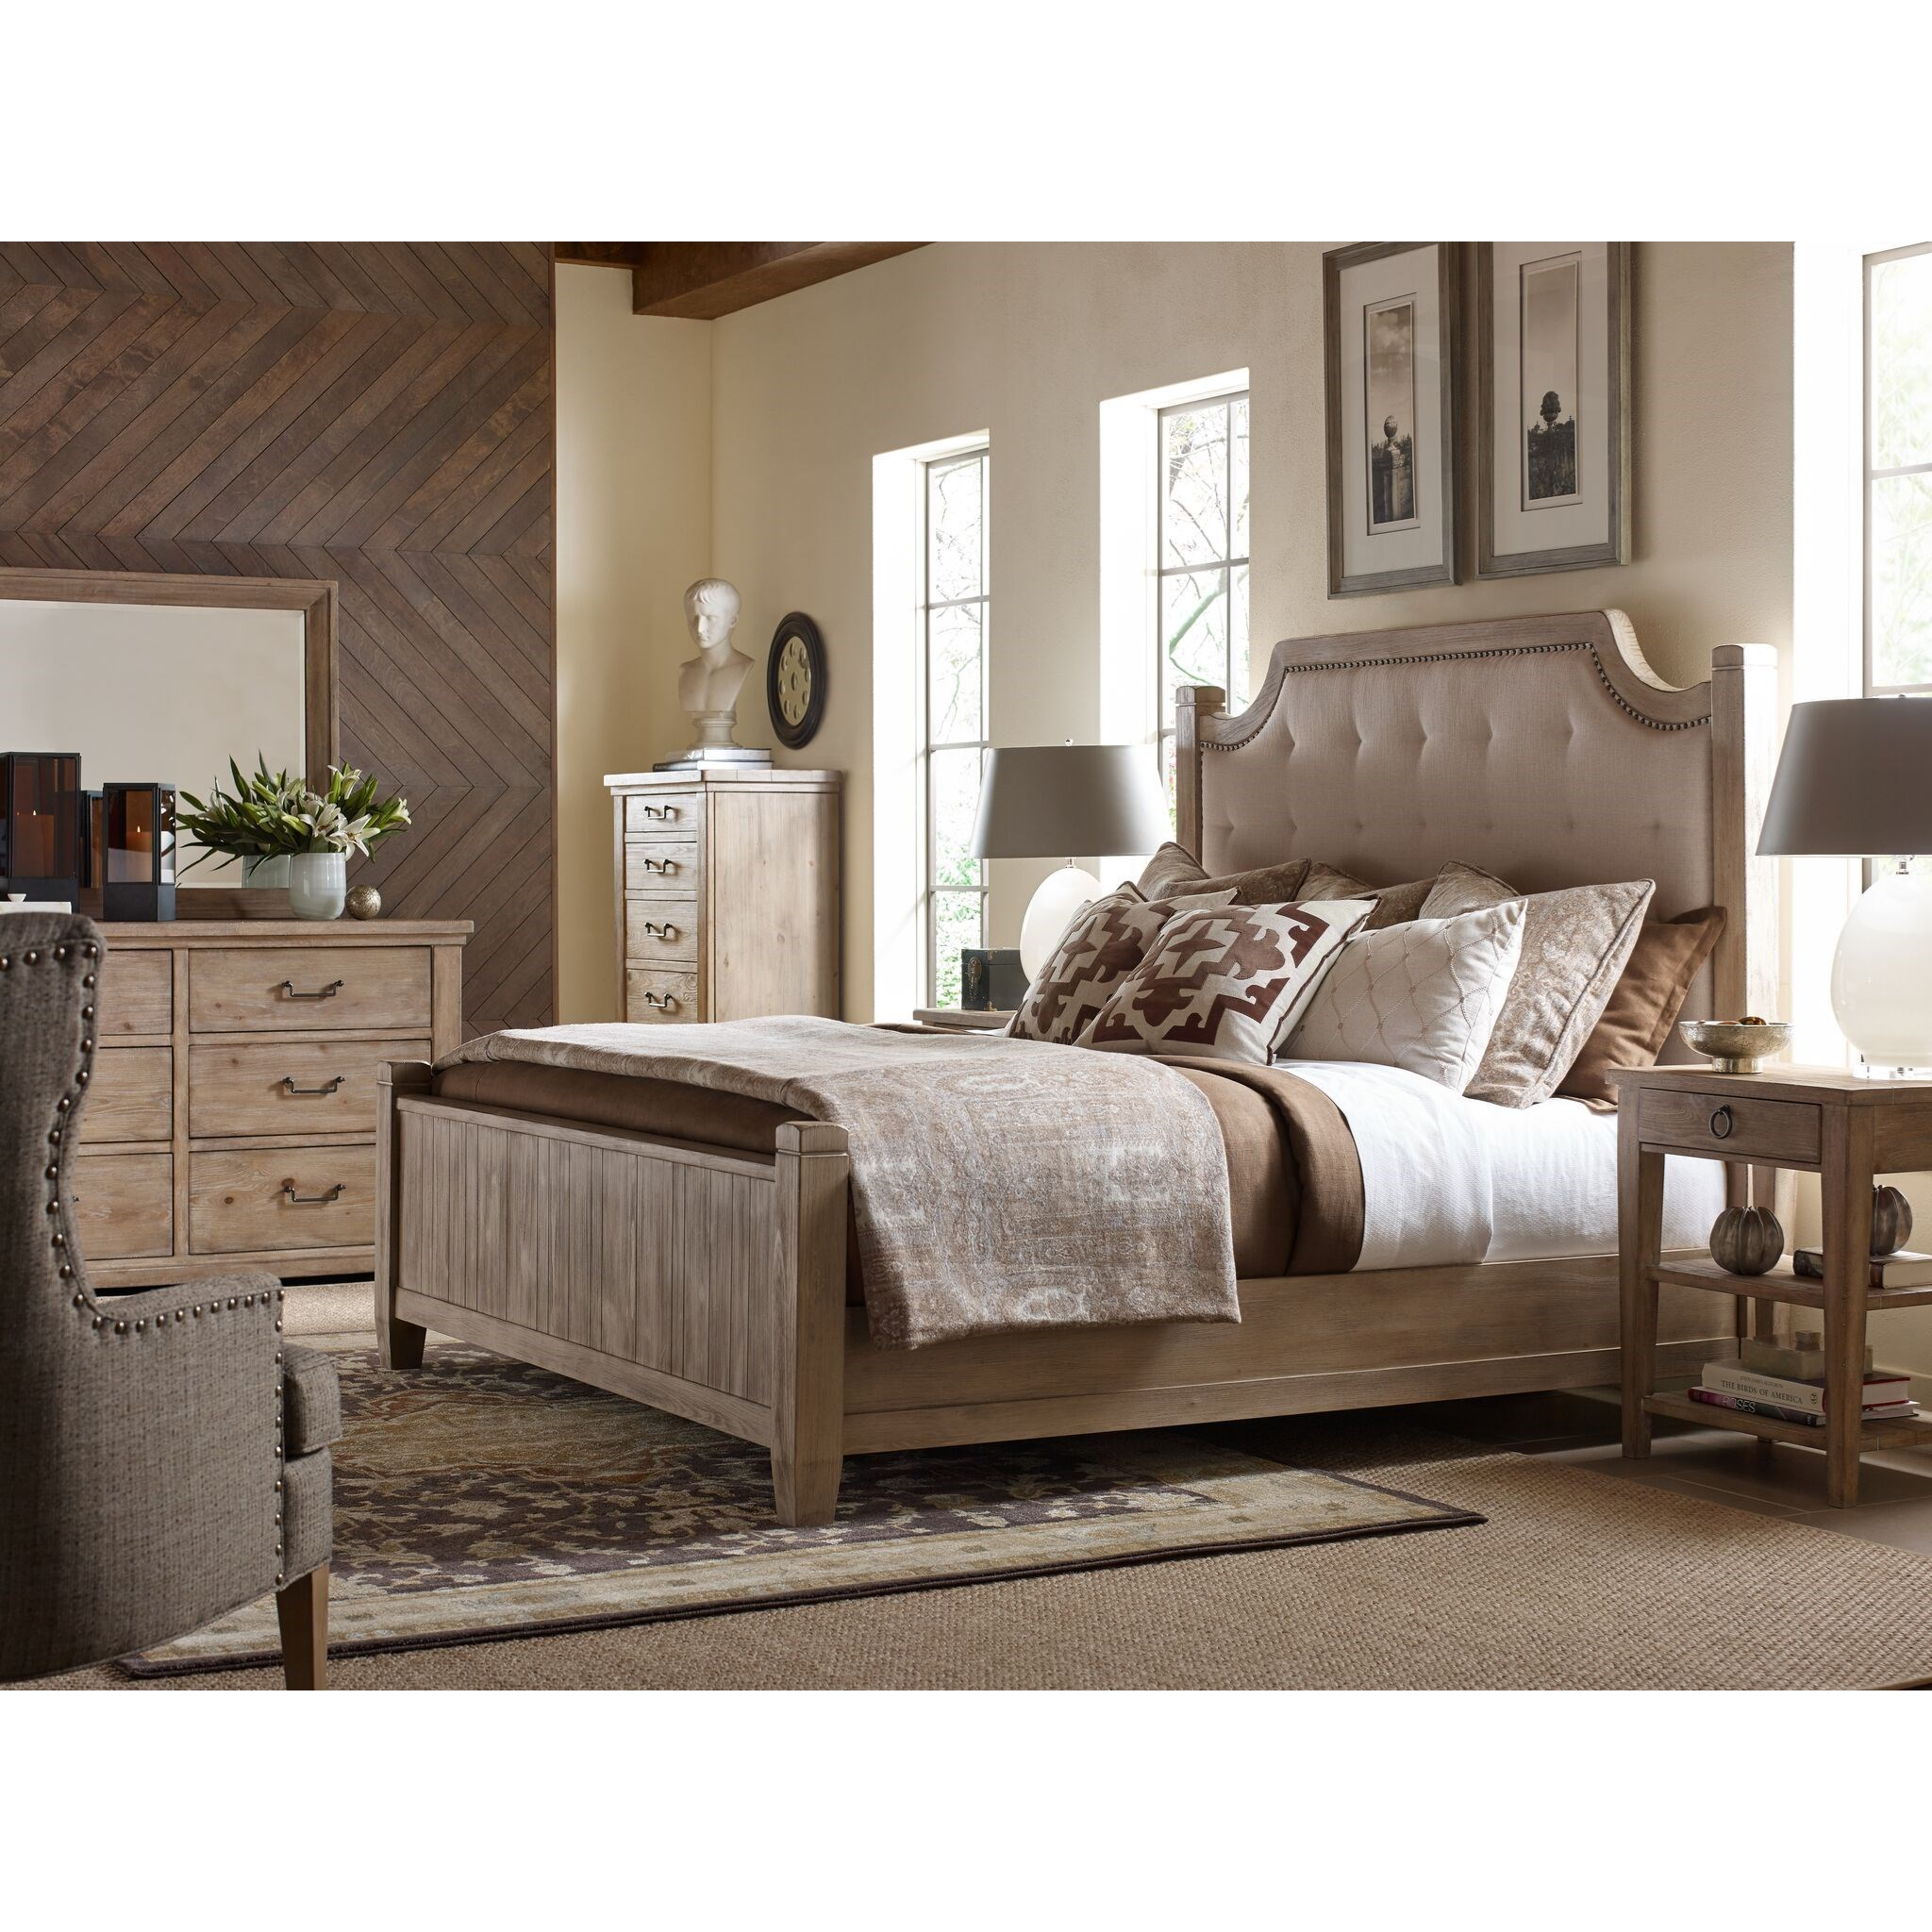 Monteverdi  Queen Bedroom Group by Rachael Ray Home by Legacy Classic at Fashion Furniture